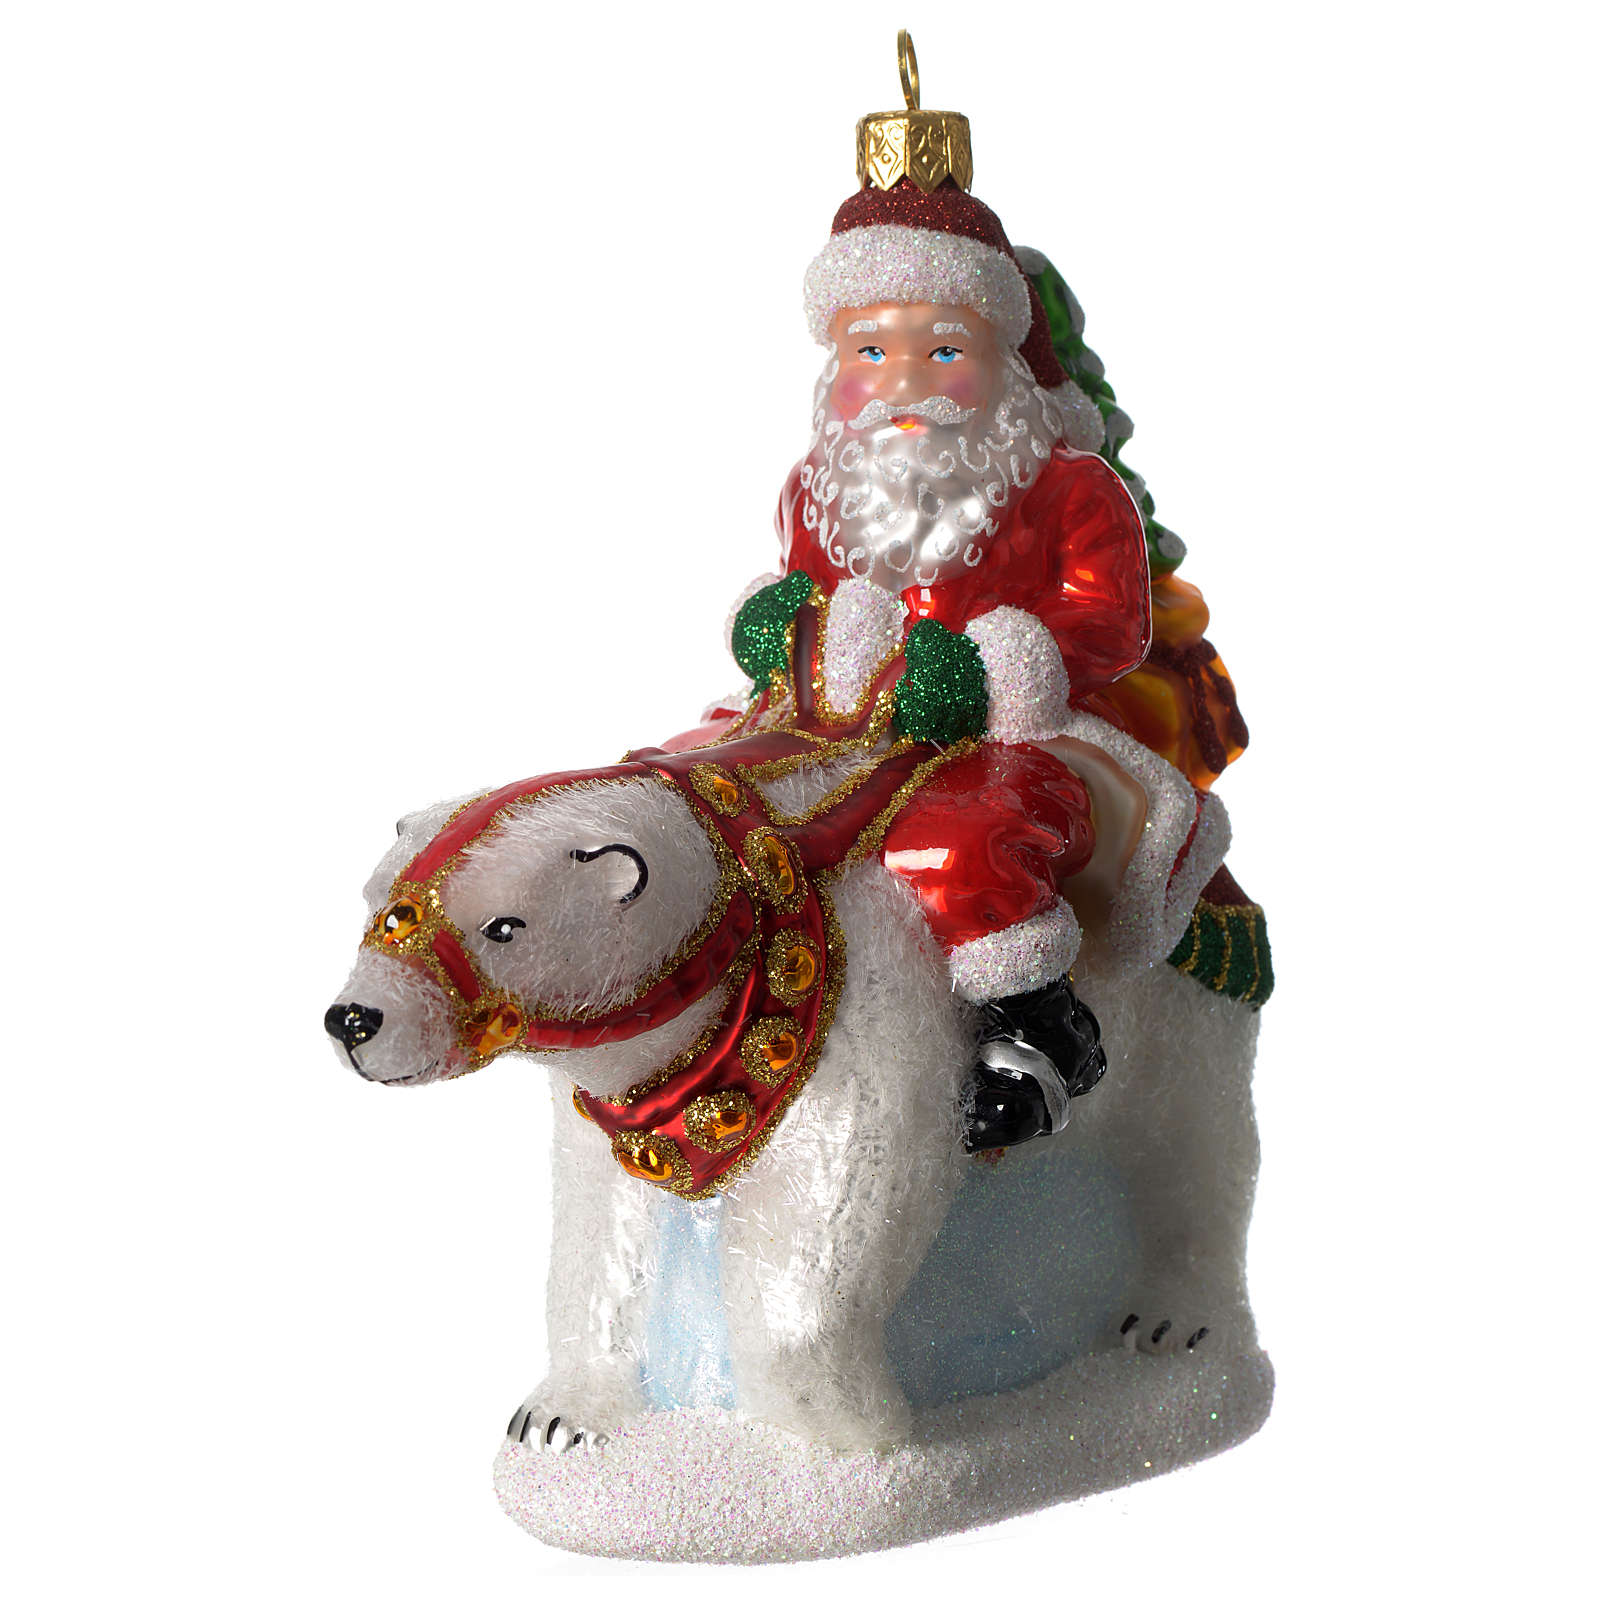 Santa Claus Decorations Uk: Santa Claus And Polar Bear, Christmas Tree Decoration In